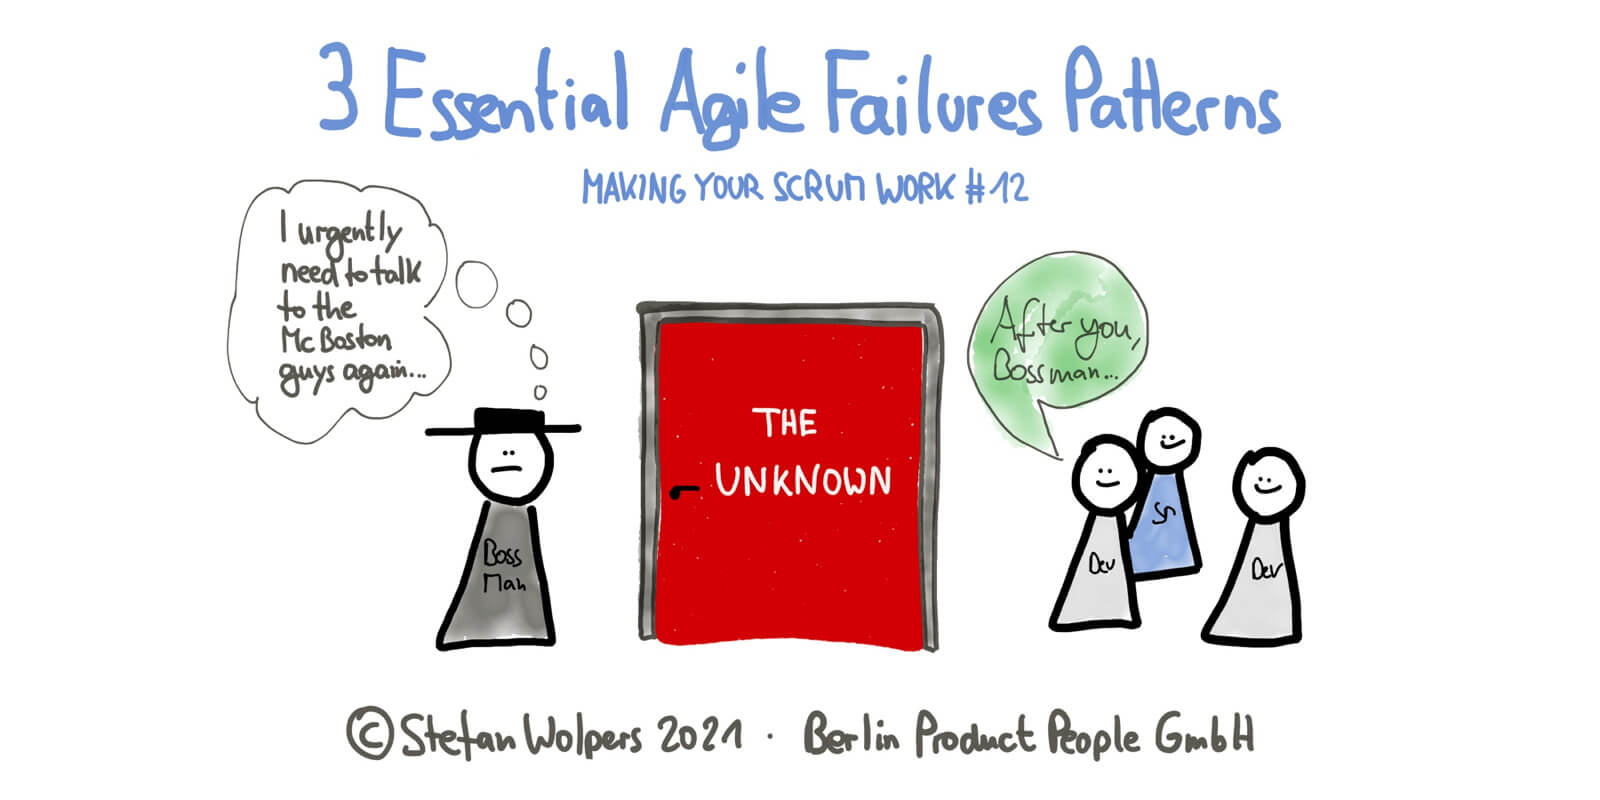 Three Essential Agile Failure Patterns in 7:31 Minutes—Making Your Scrum Work #12